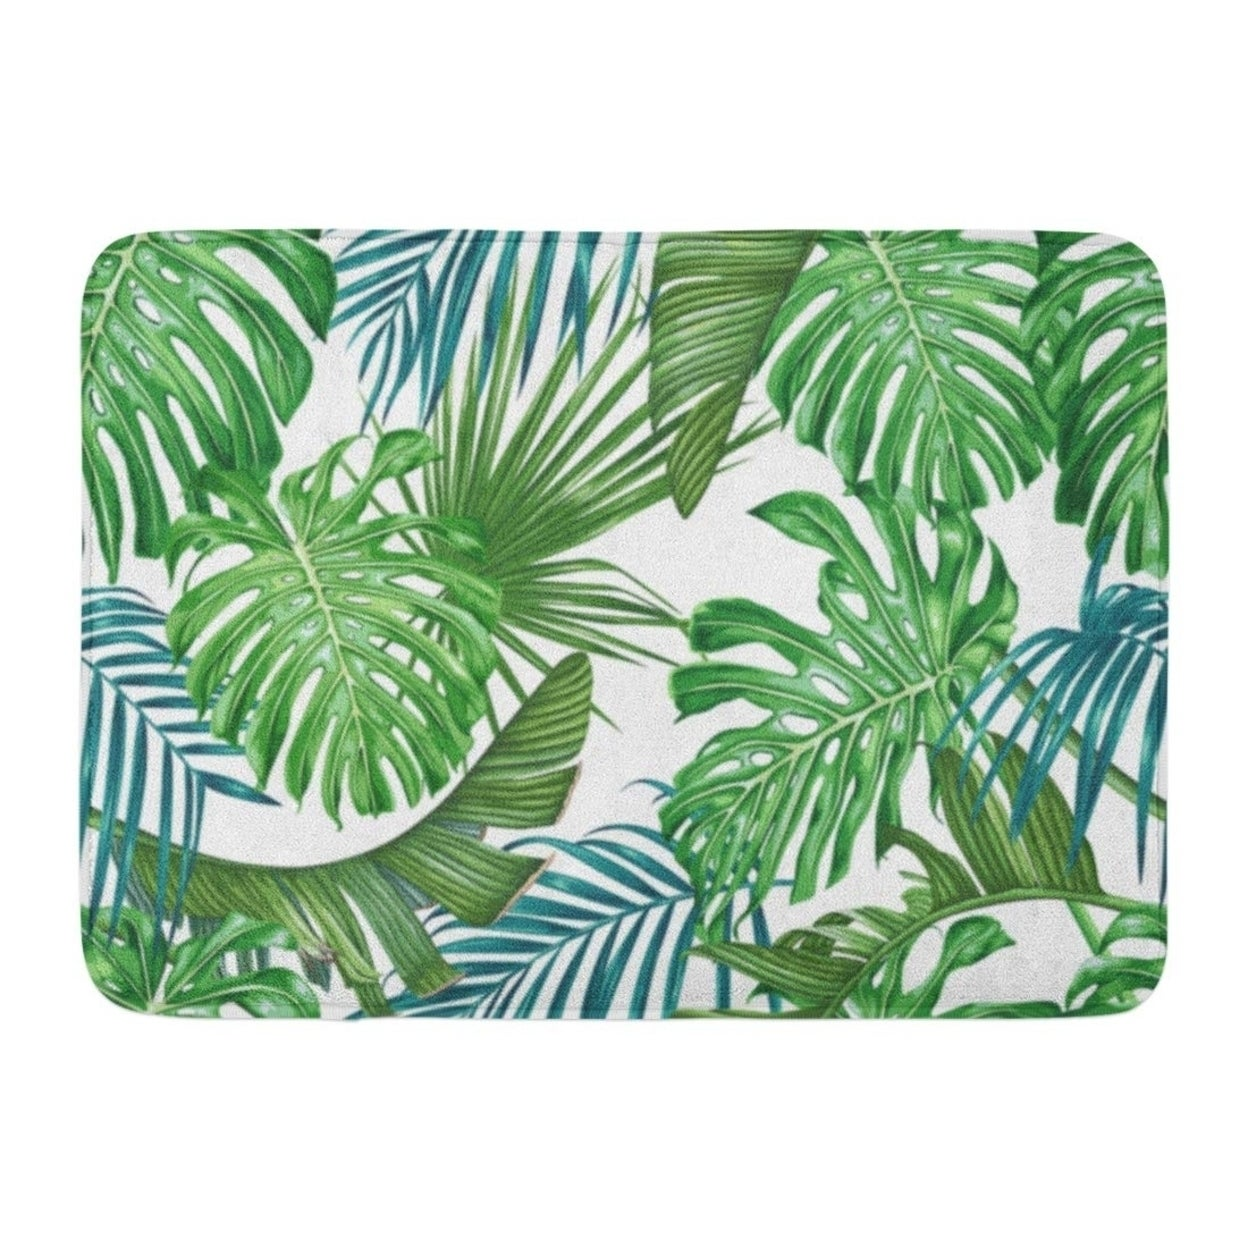 Green Tropic Tropical Leaves Palm And Monstera Pattern Leaf Floral Doormat Floor Rug Bath Mat 23 6x15 7 Inch Multi On Sale Overstock 31776012 A guide to identification and cultivation. green tropic tropical leaves palm and monstera pattern leaf floral doormat floor rug bath mat 23 6x15 7 inch multi